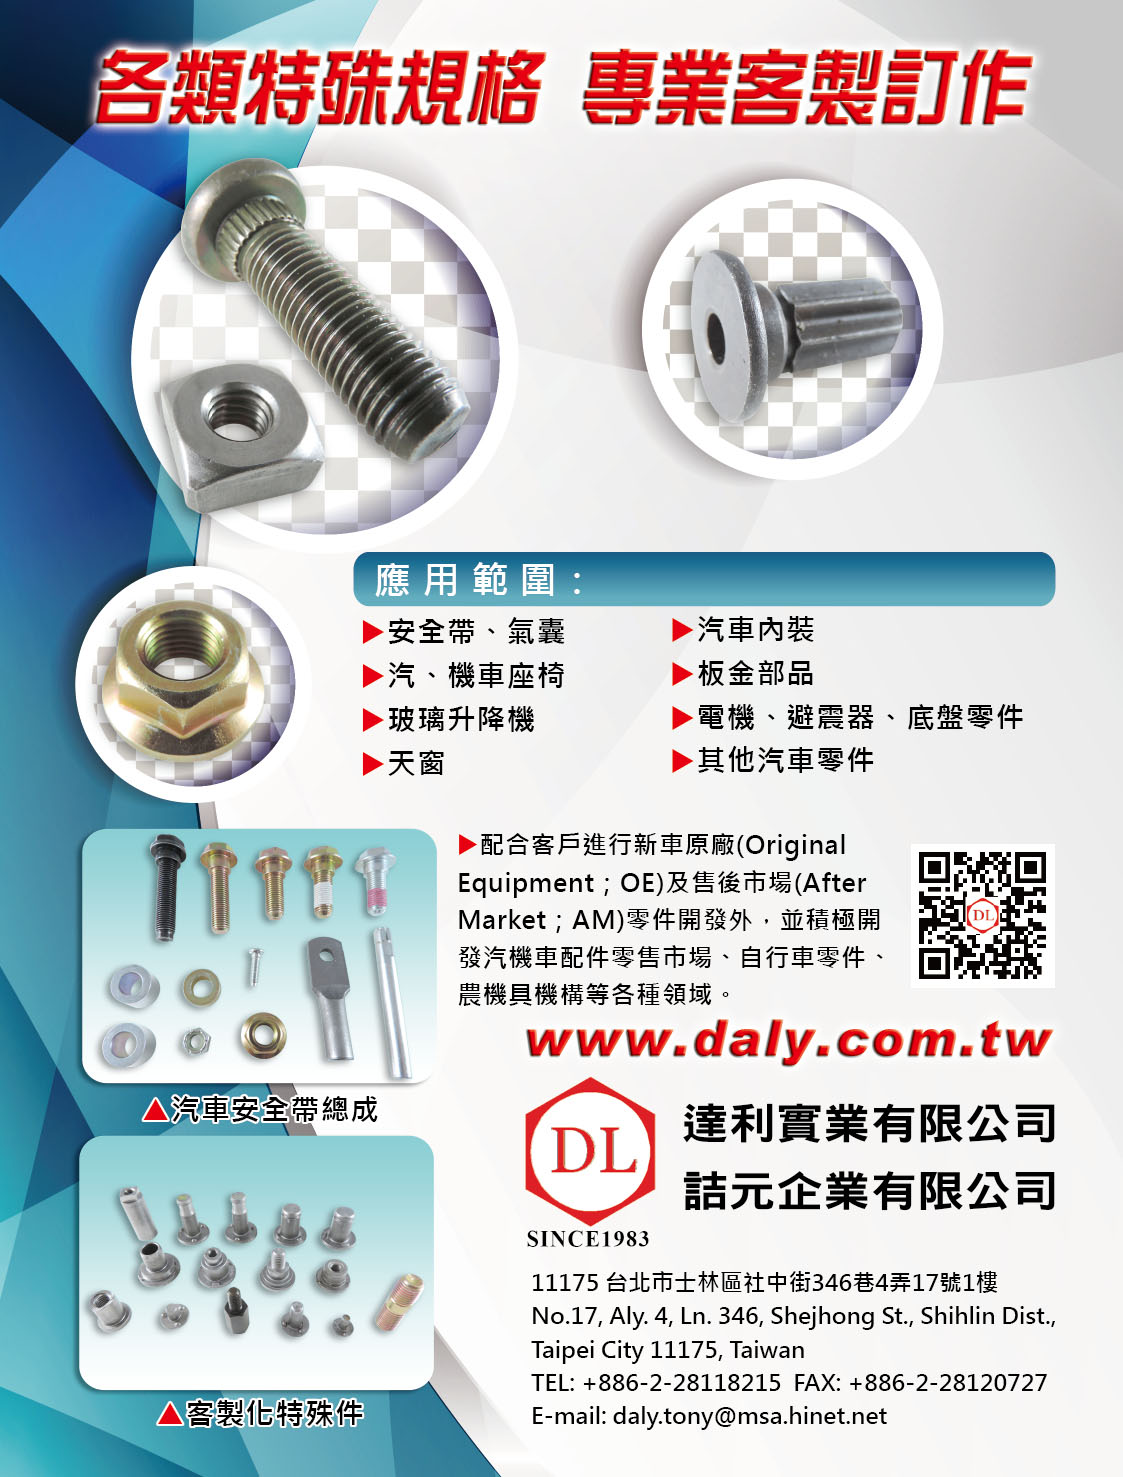 DALY METAL INDUSTRIAL CO., LTD.